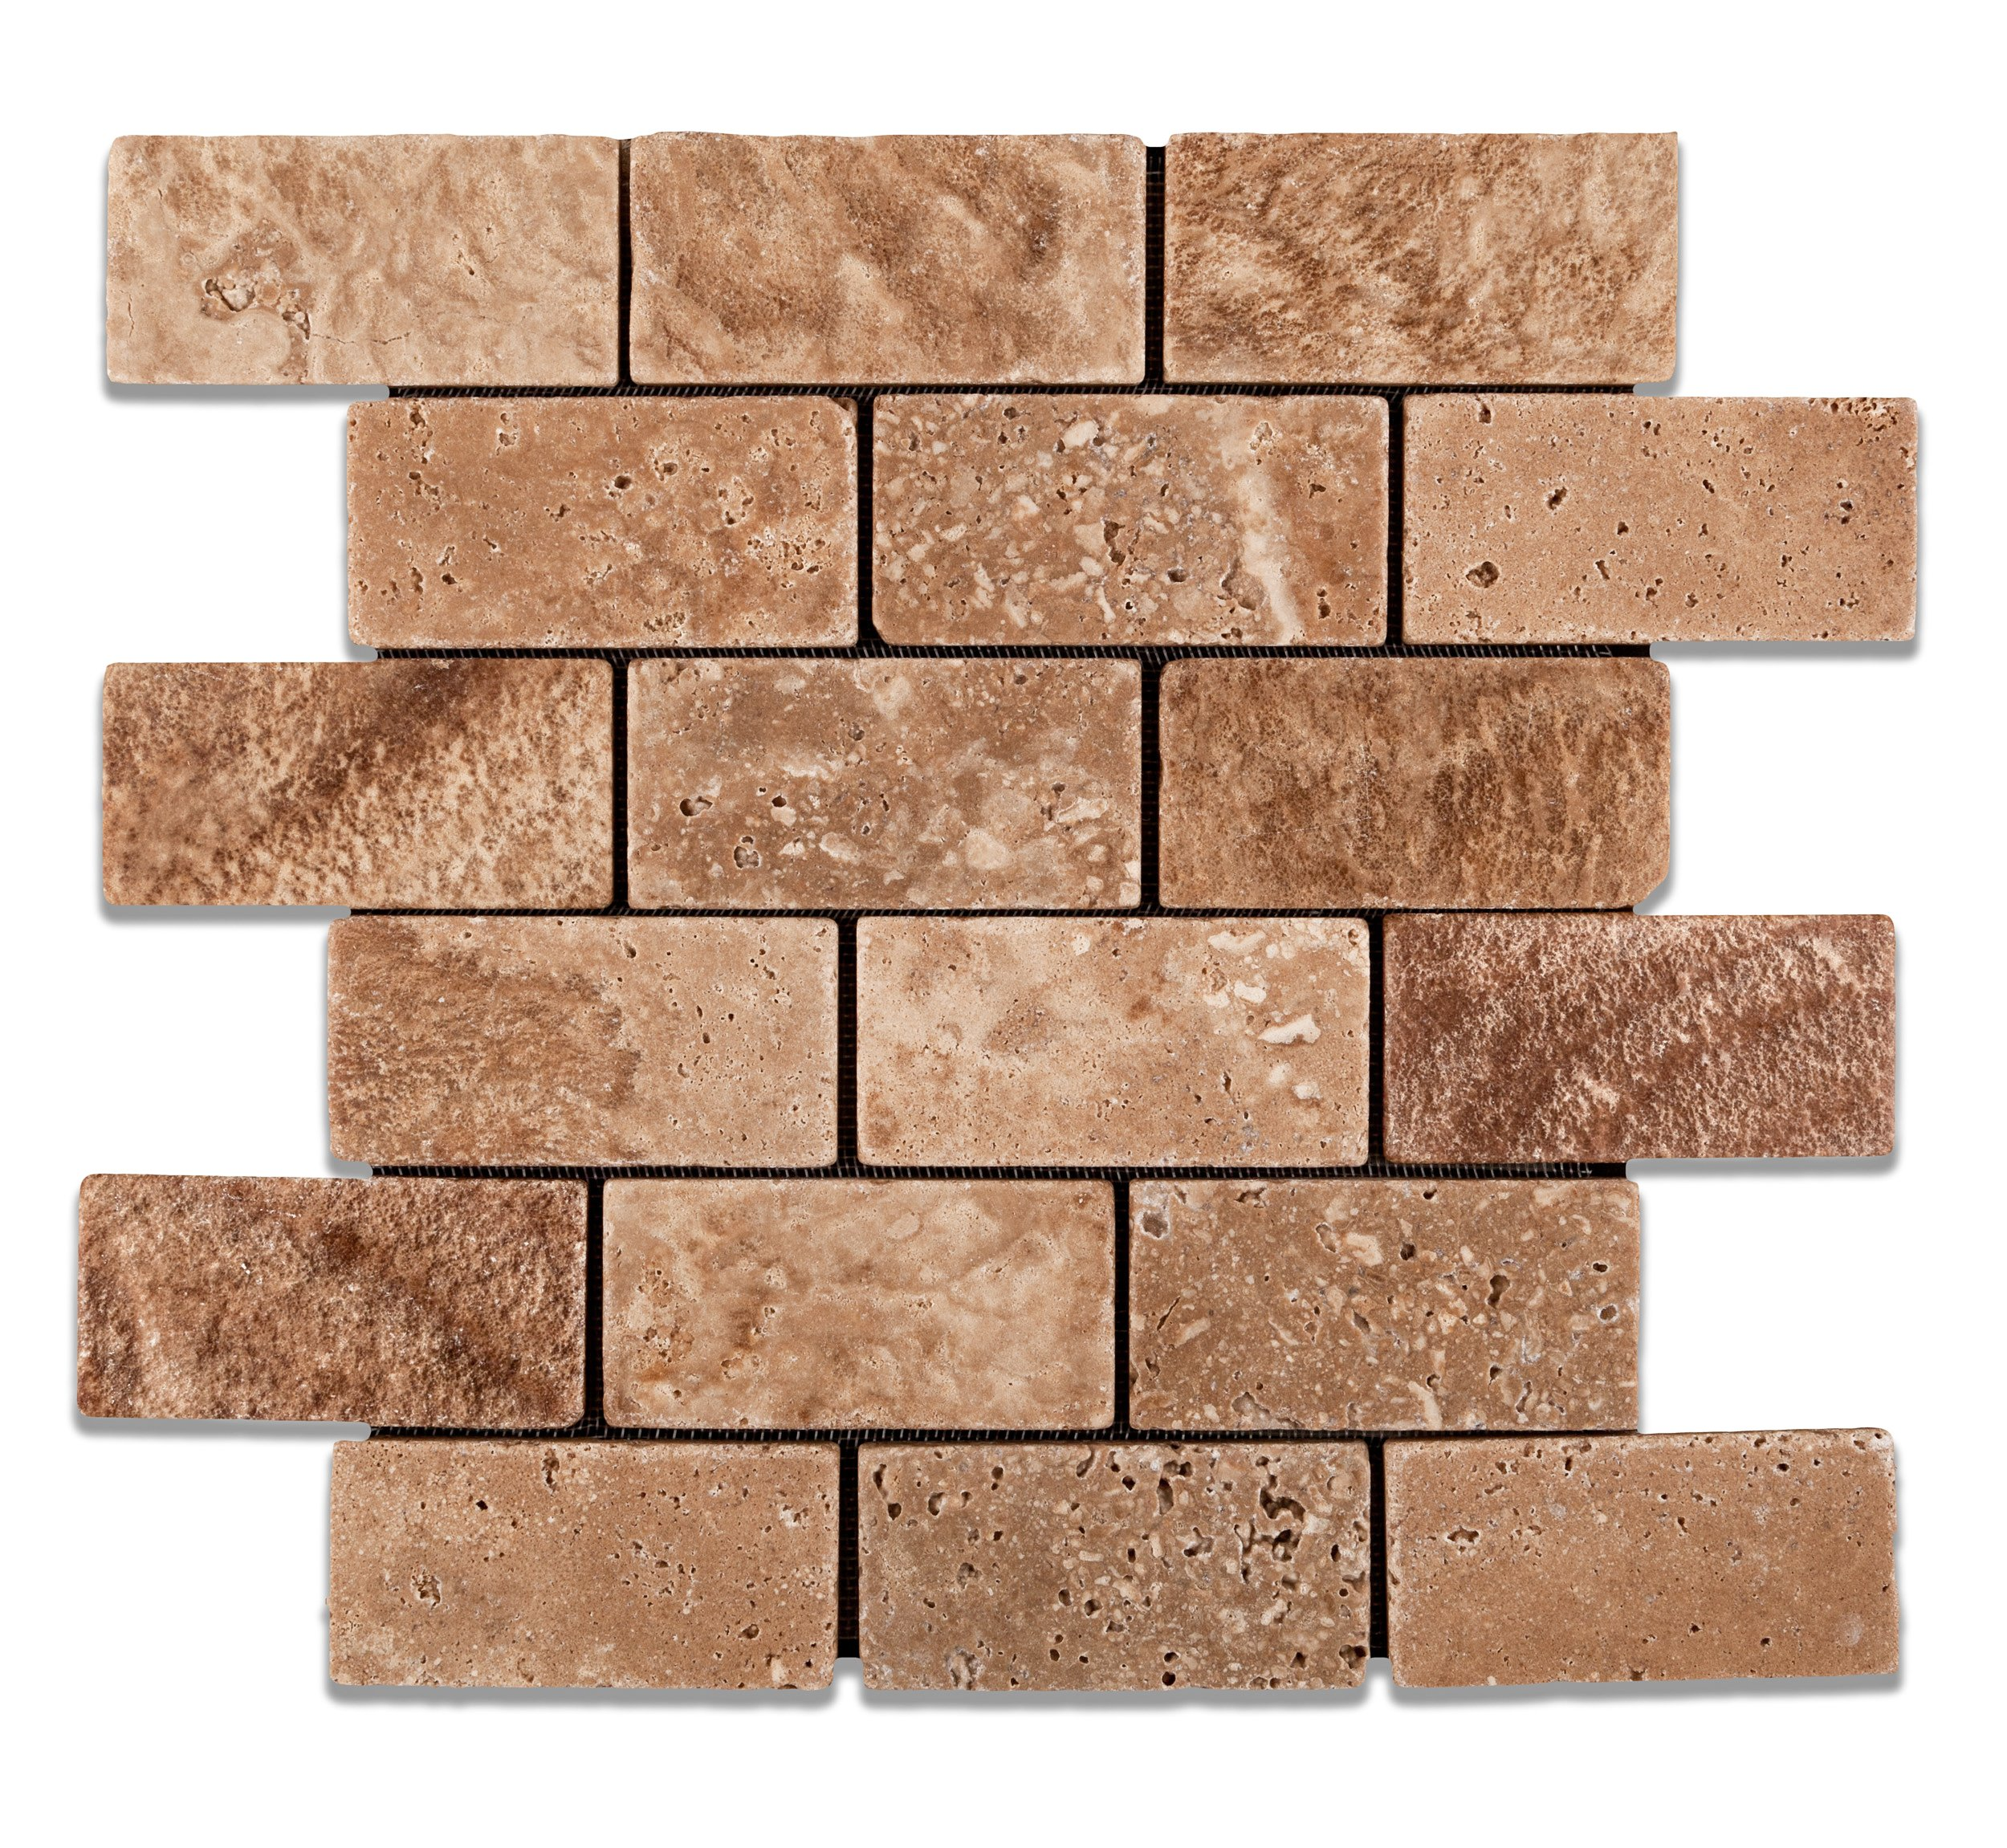 Andean Walnut Peruvian Travertine 2 X 4 Tumbled Brick Mosaic Tile - Box of 5 Sheets